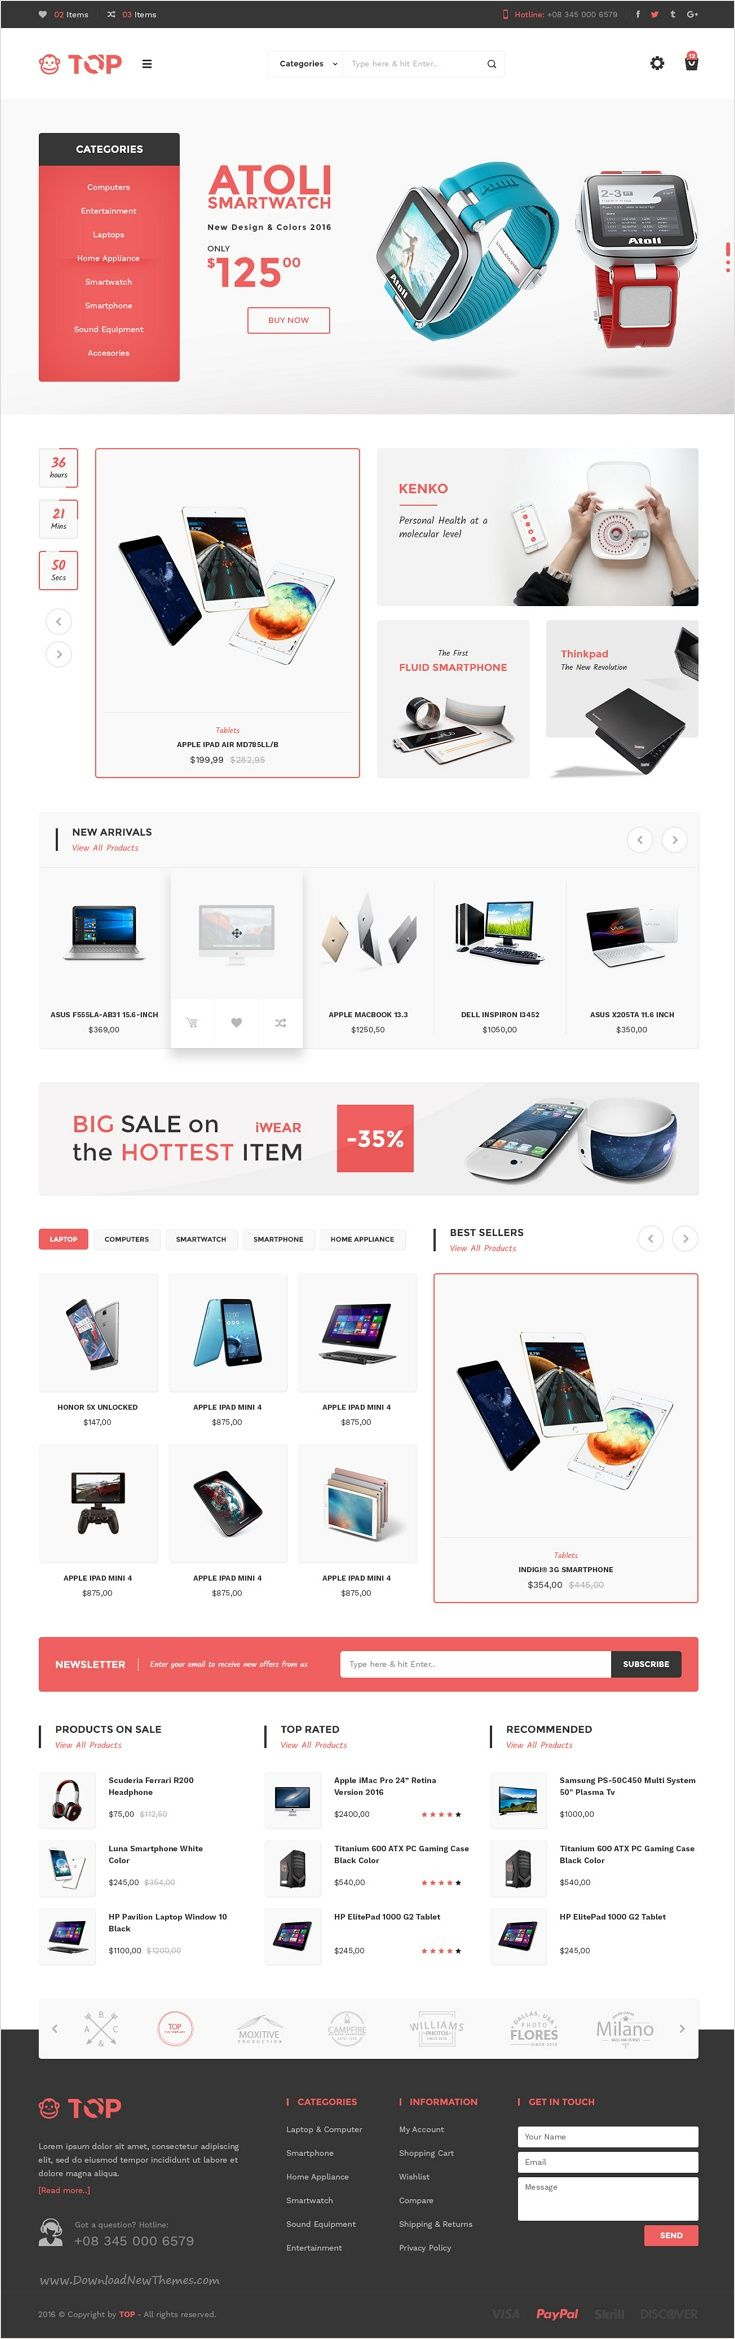 Top is a modern and creative #PSD #template for multipurpose #electronics #shop eCommerce website with 7 amazing homepage layouts download now➩ https://themeforest.net/item/top-ecommerce-psd-template/17388817?ref=Datasata